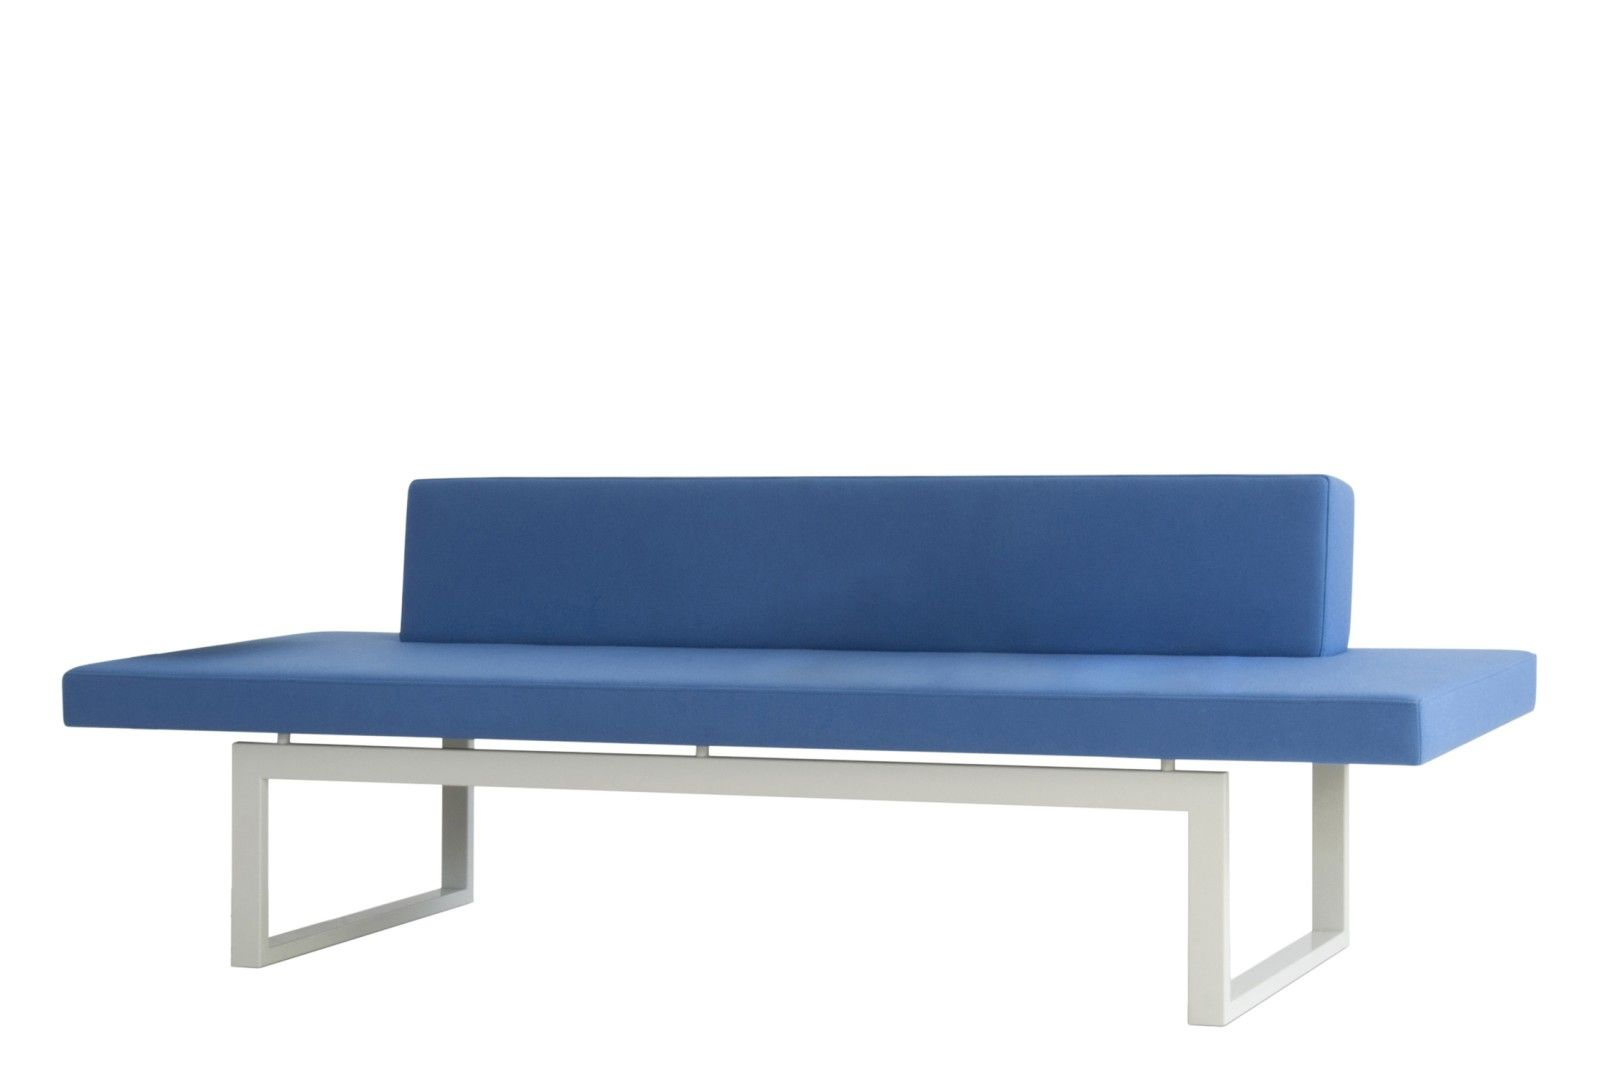 Hm106h Quiet Seating Sofa From Hitch Mylius Sofa Upholstered